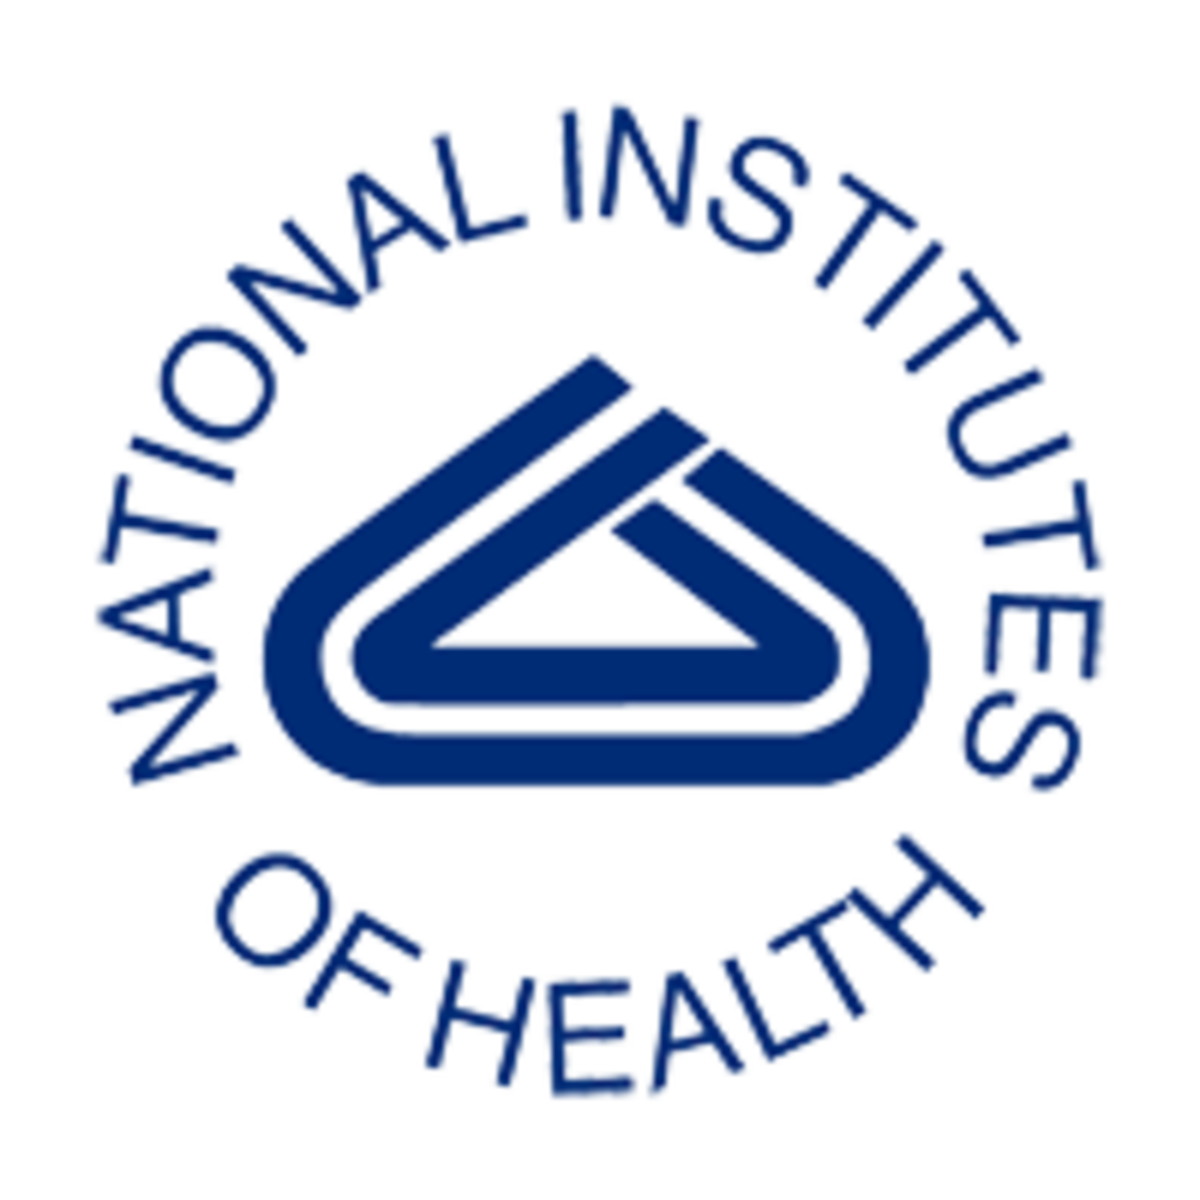 Straus was the first to be debarred by NIH, which had instituted new regulations in 1980 regarding grant funding.